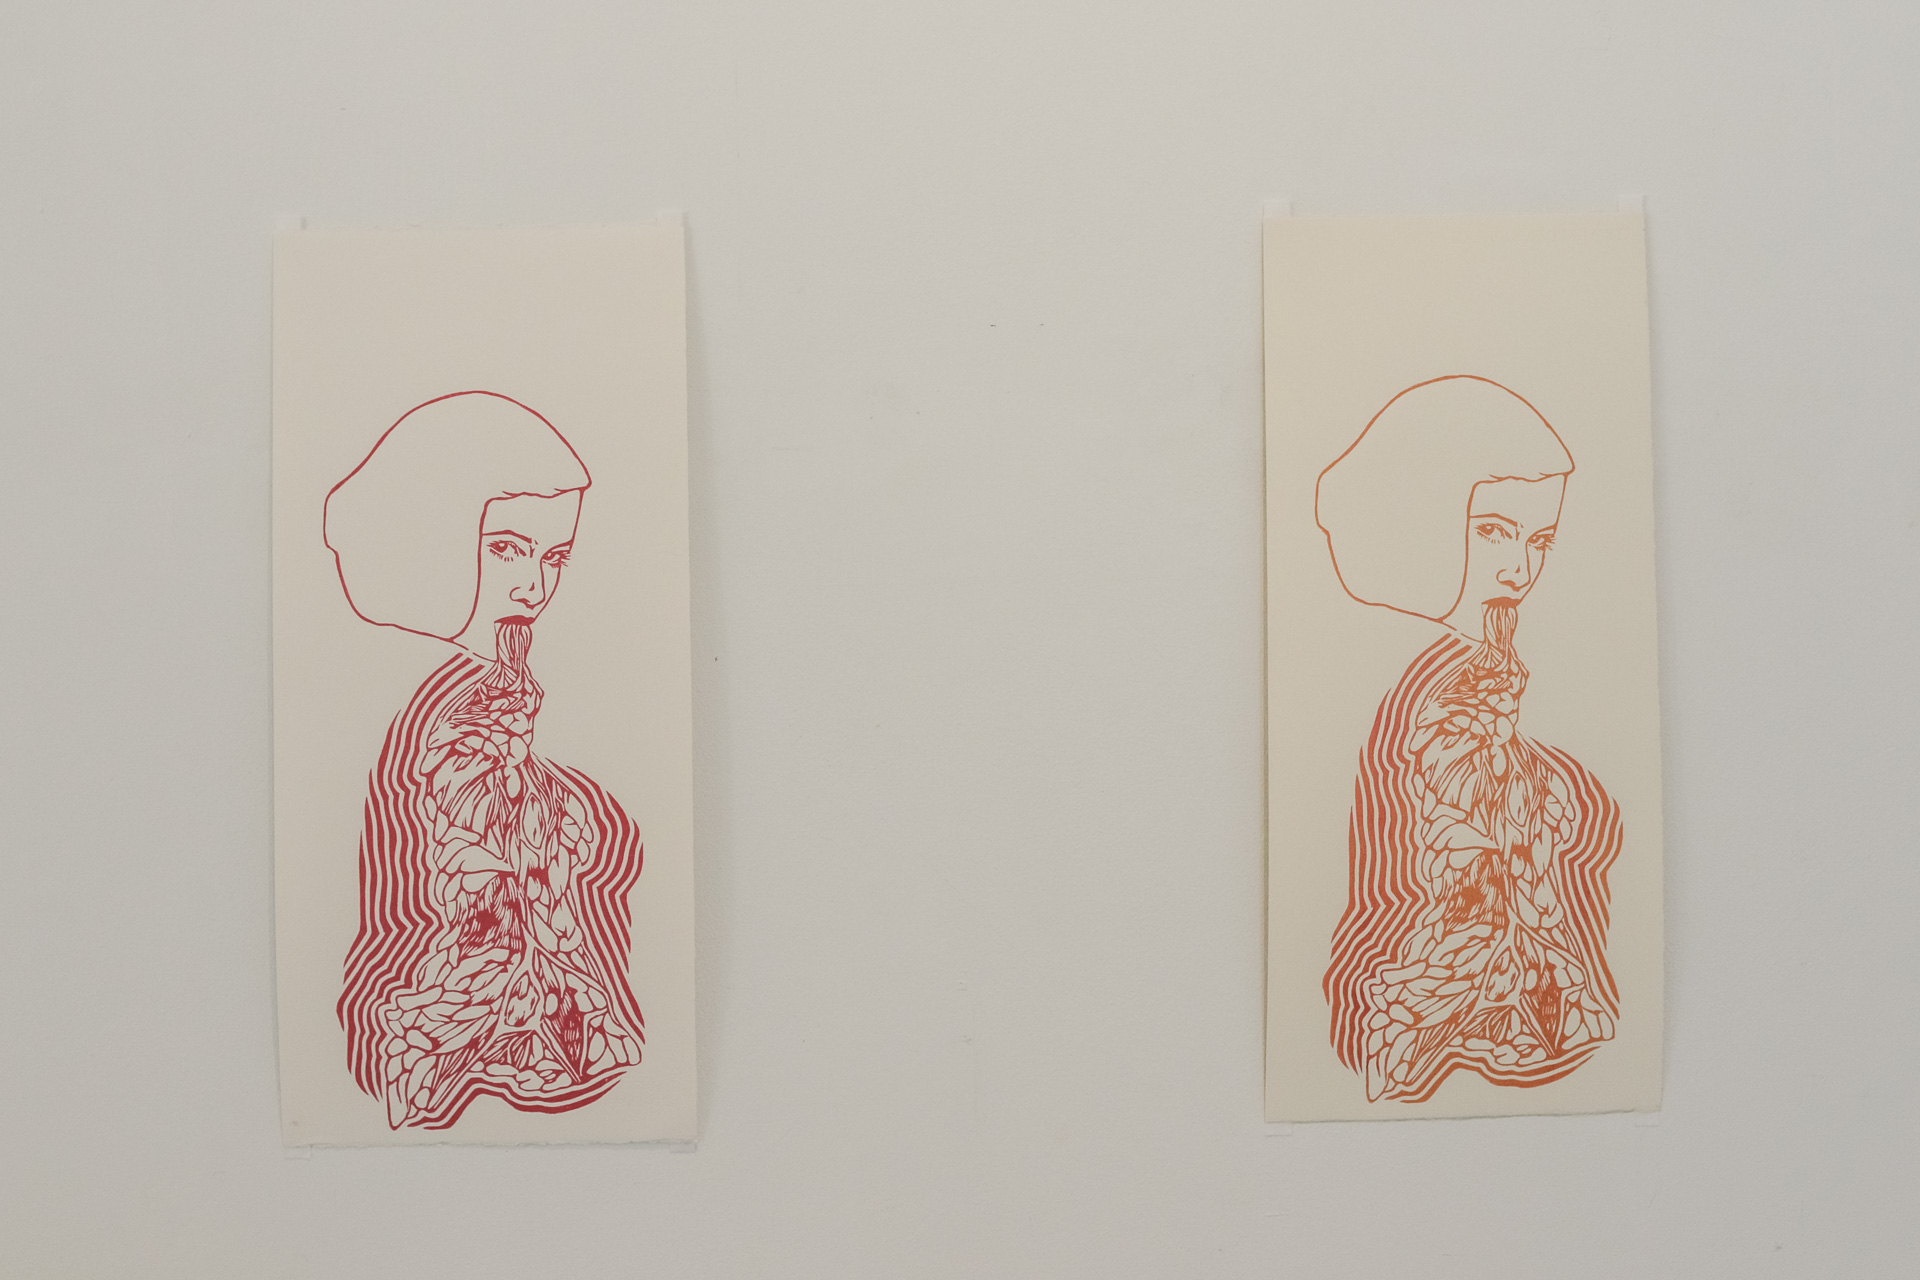 Kimberley Pace, Untitled (Red), lino print, 52 x 24.3 cm and Untitled (Orange), 2012, lino print, 52cm x 24.3cm.